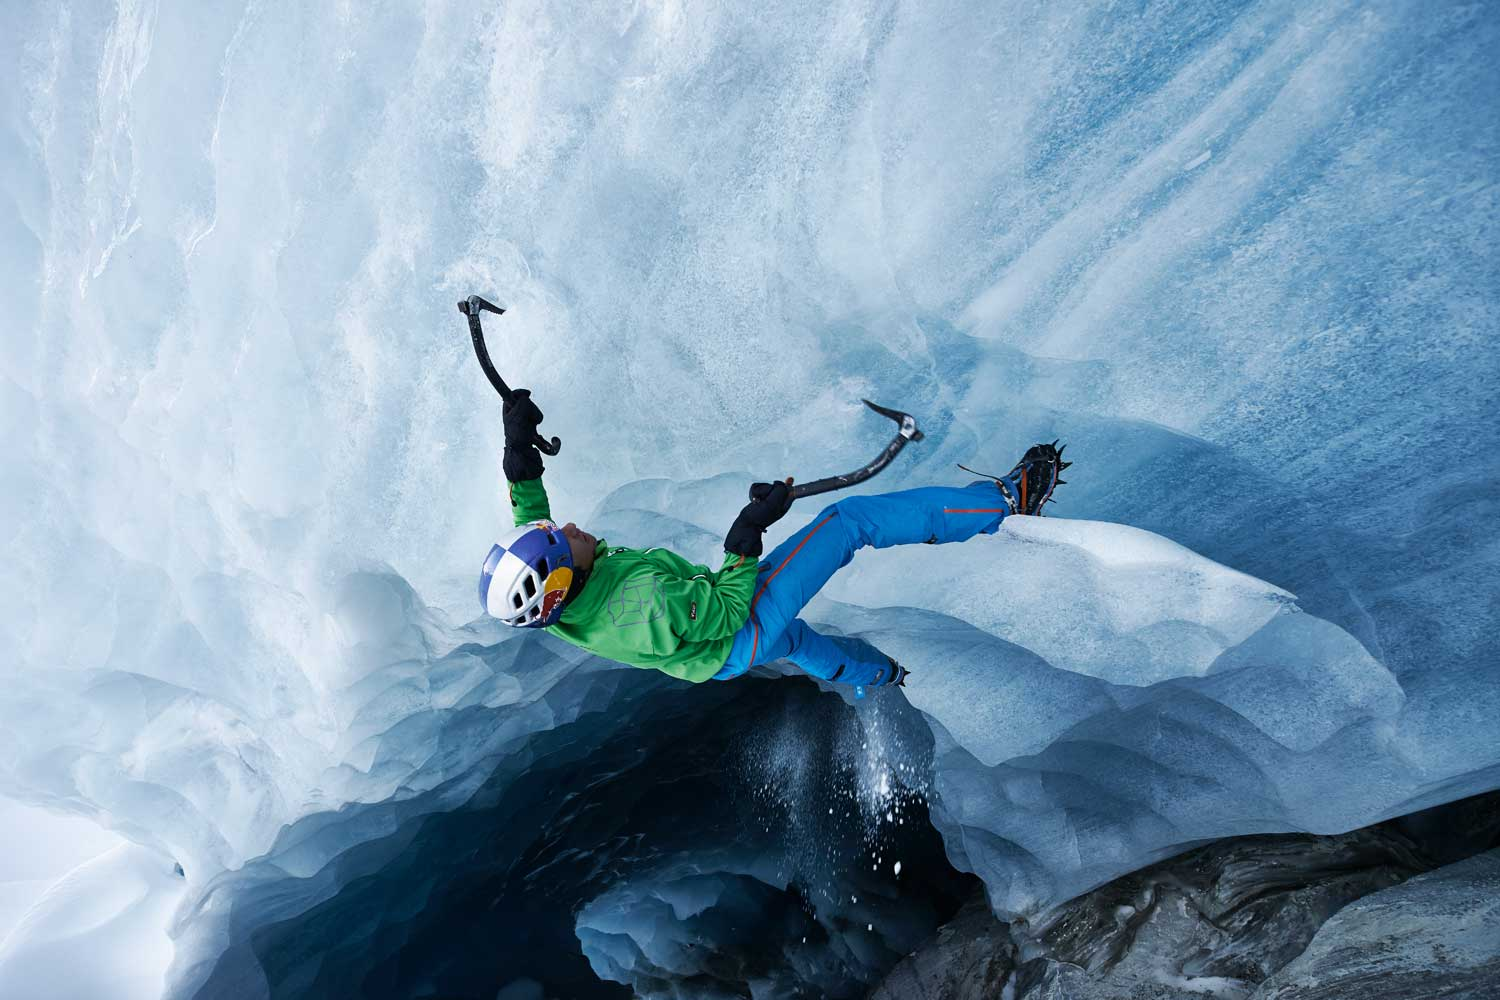 David Lama scales an iceberg in the Otztal, Tyrol, Austria.